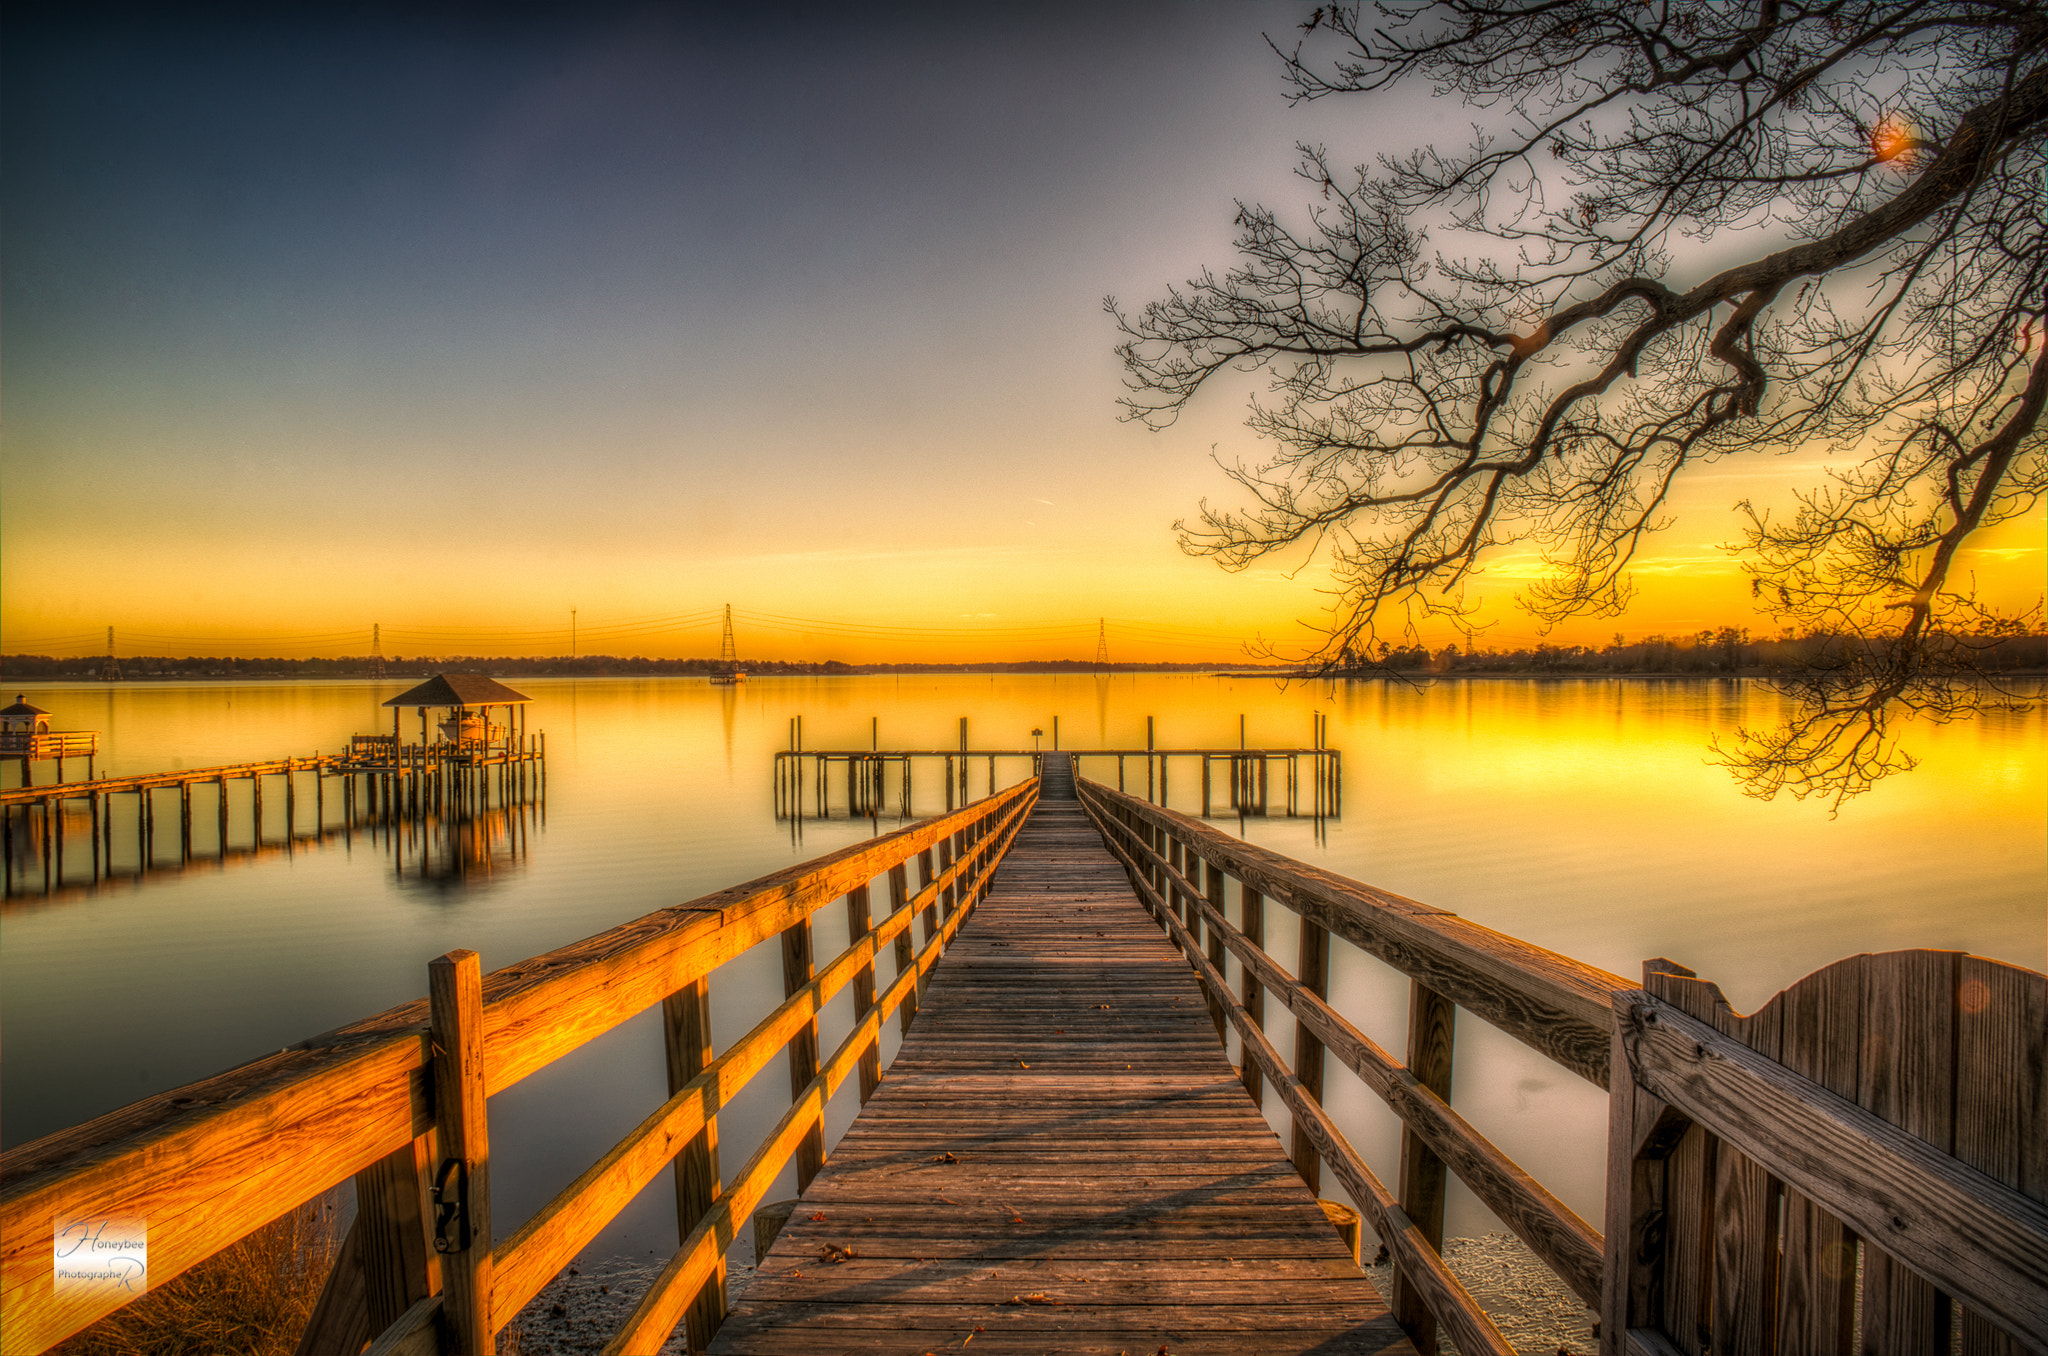 Photograph Good-bye to Governors Pointe by Mark Vandenwauver on 500px